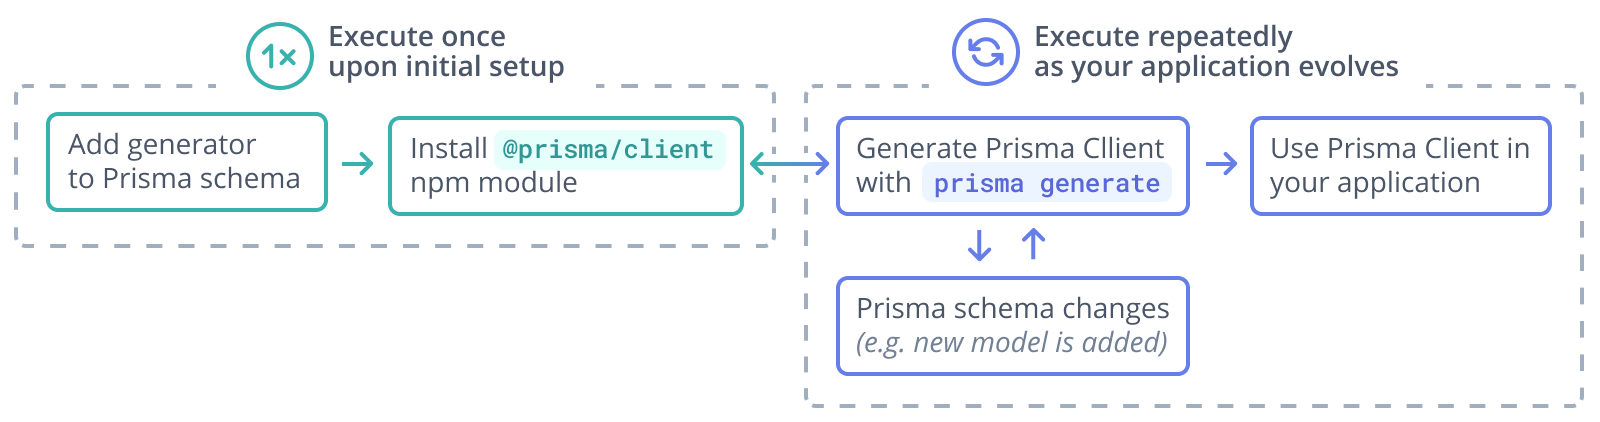 Graphical illustration of the typical workflow for the Prisma Client generation